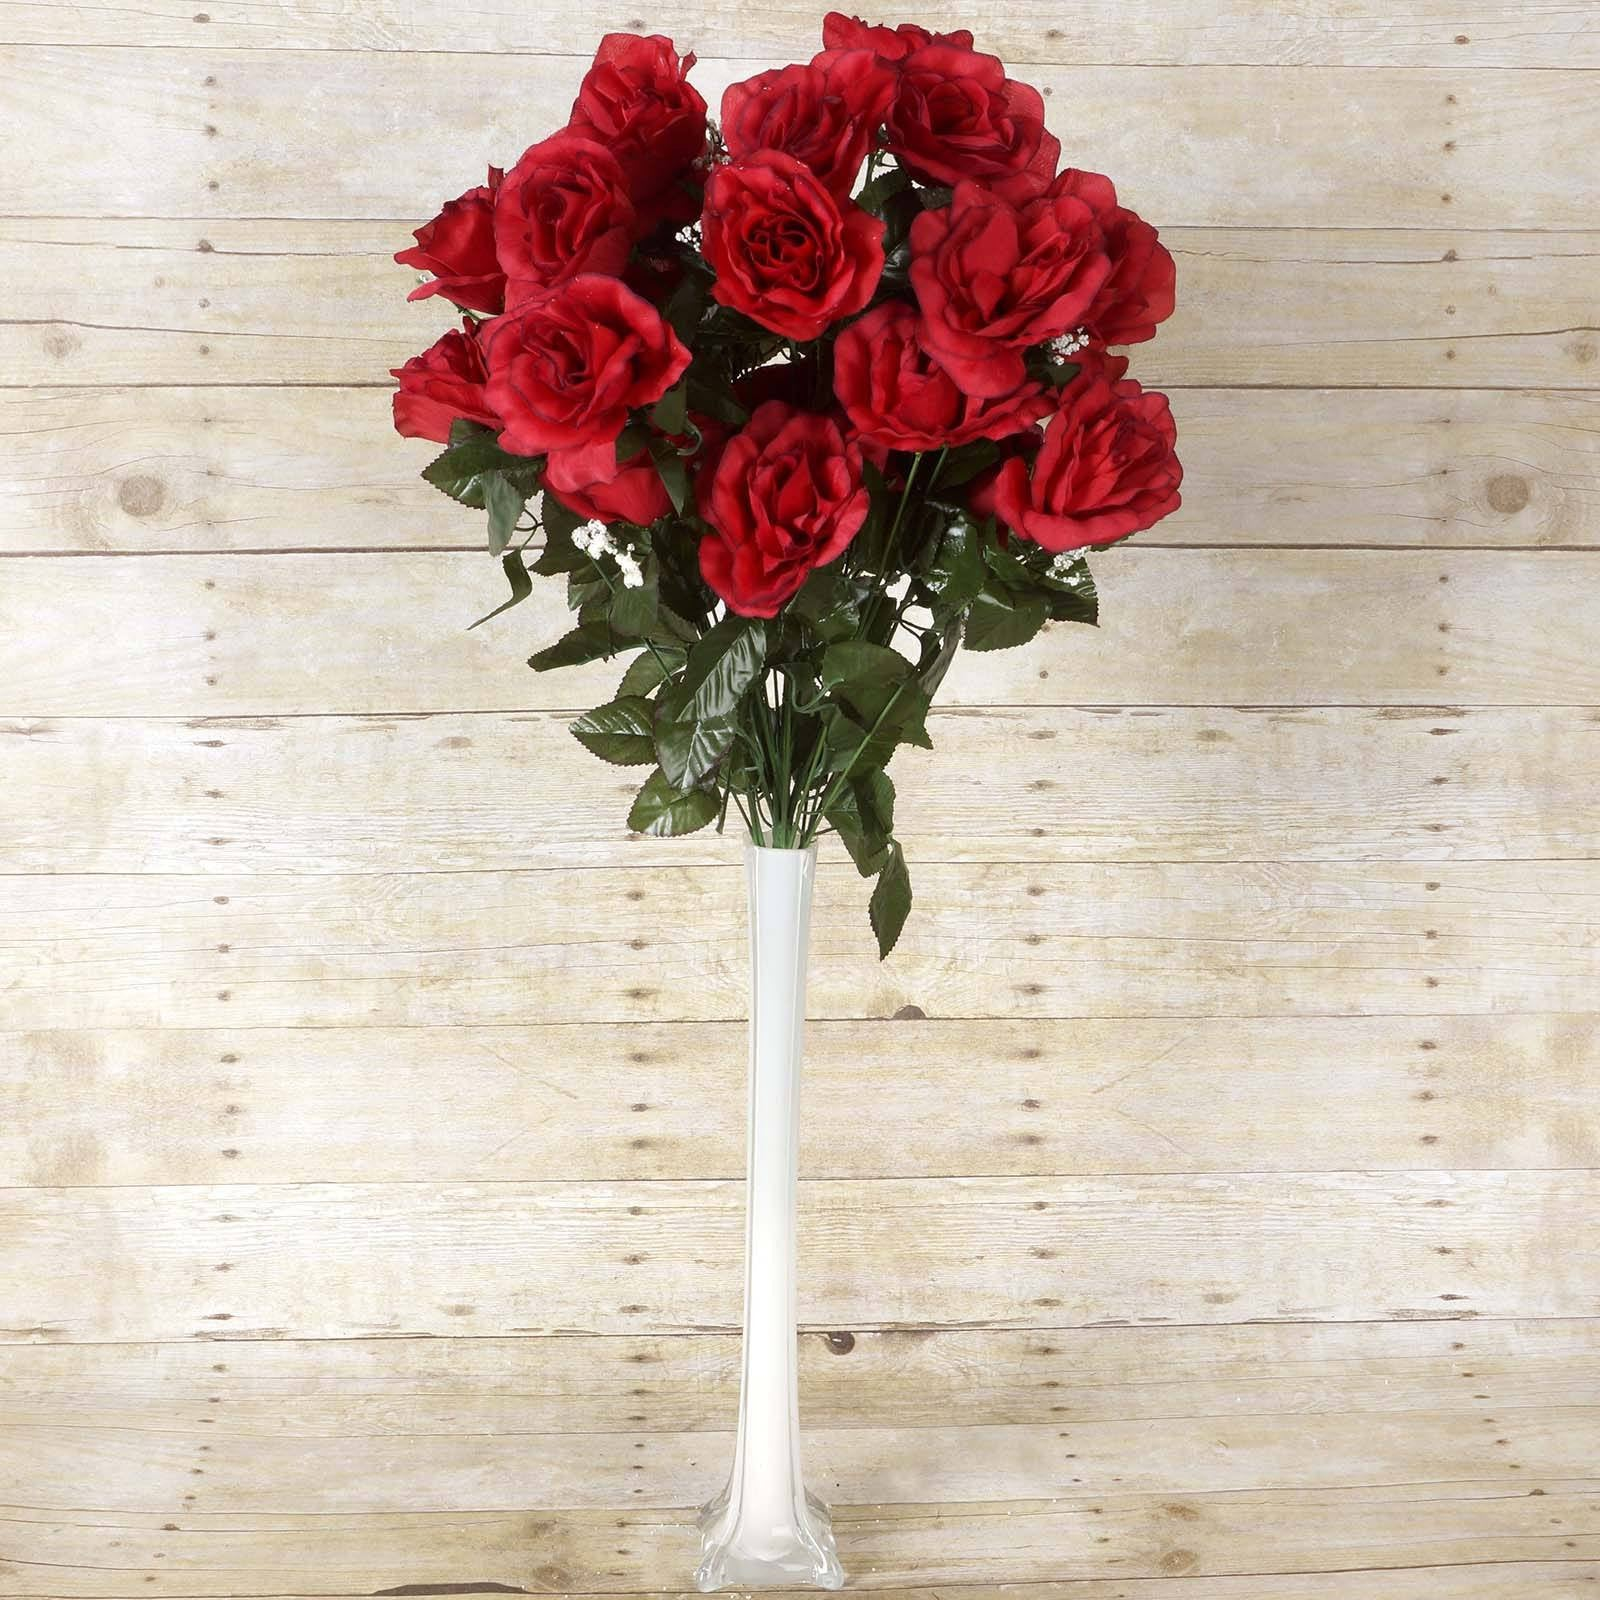 96 Artificial Black/Red Giant Silk Open Roses Wedding Bridal Bouquet ...